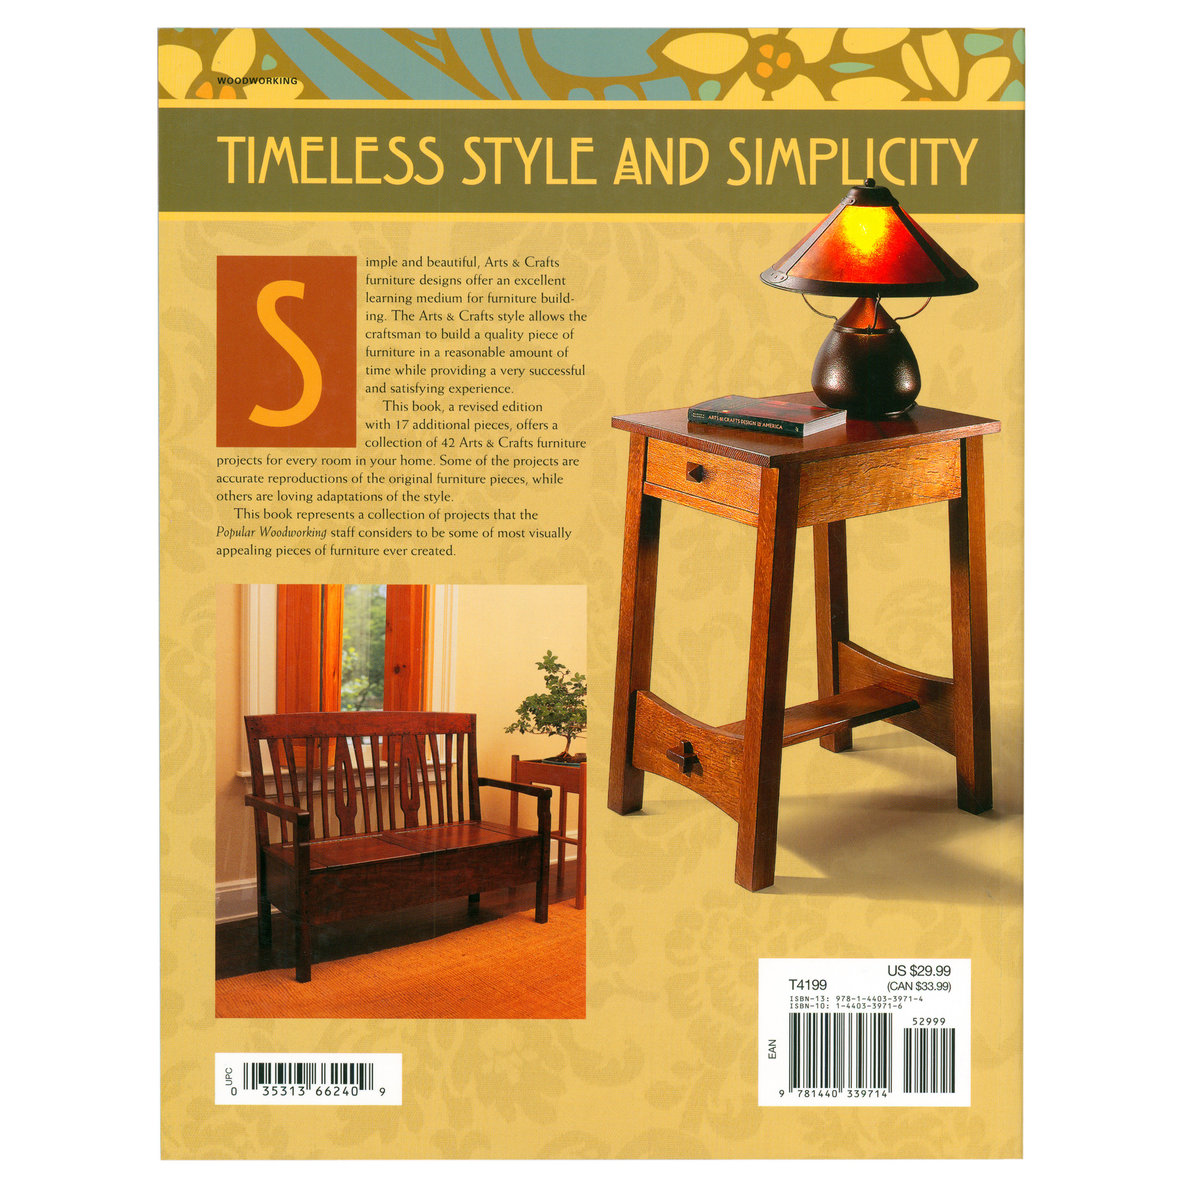 Popular Woodworking S Arts Crafts Furniture Projects